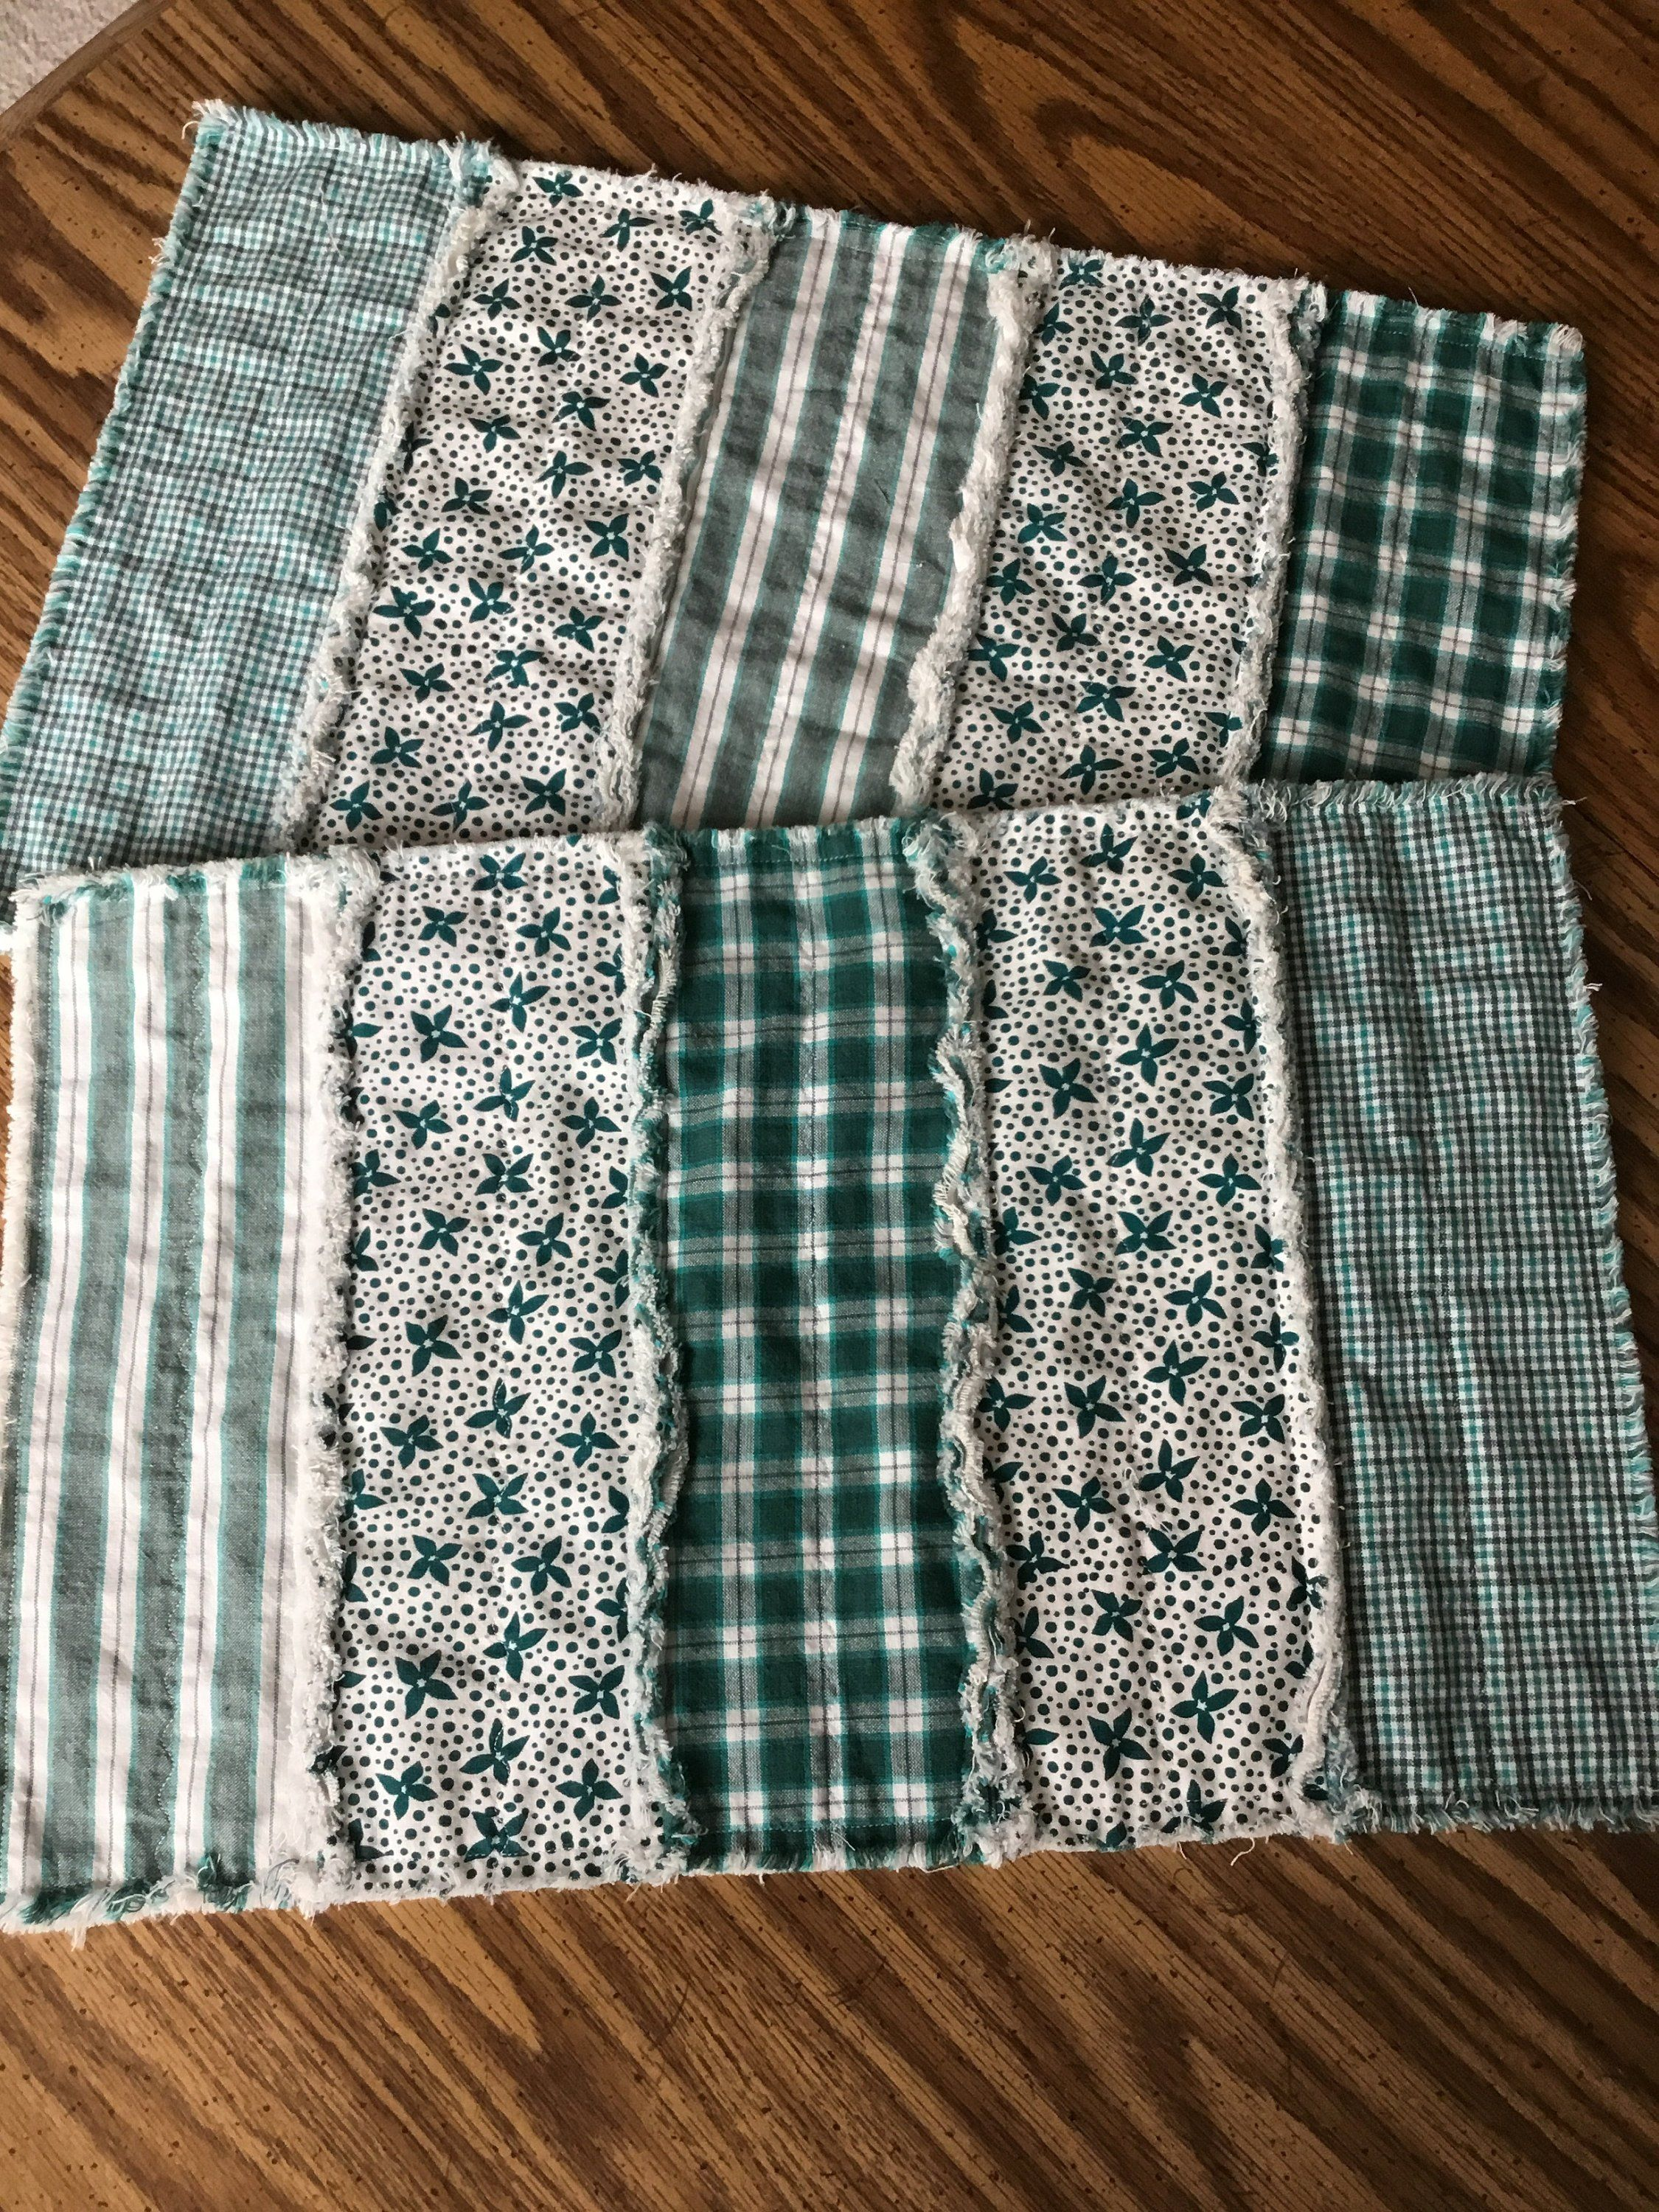 Quilted Country Placemats Farmhouse Placemats Set Of 2 Placemats